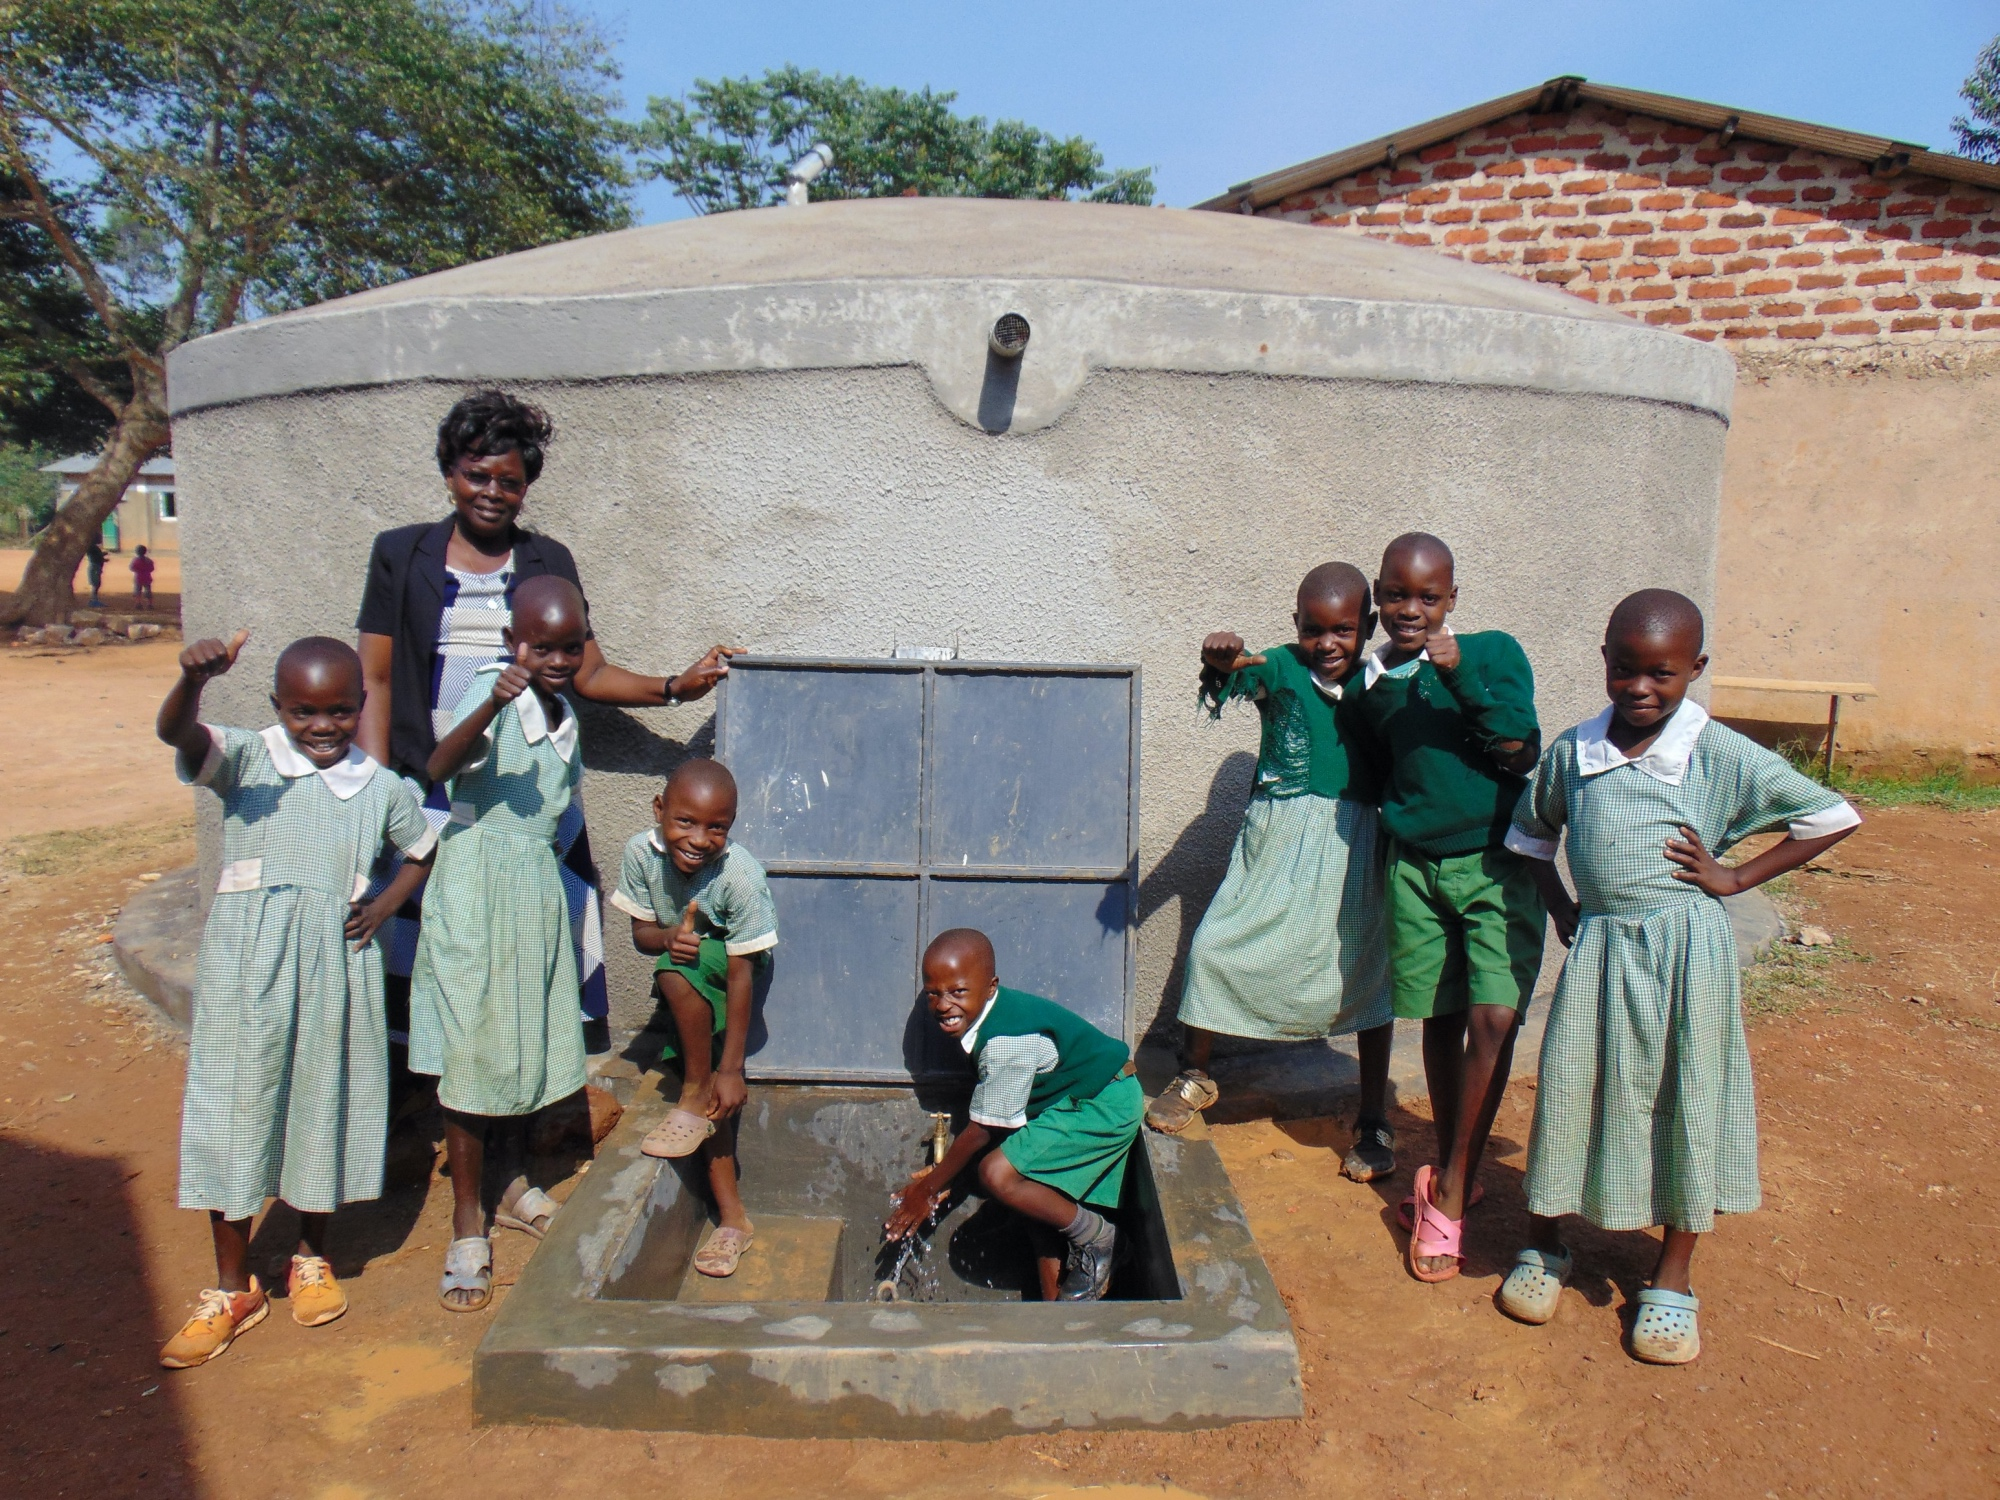 The Water Project : 15-kenya19049-celebrating-the-rain-tank